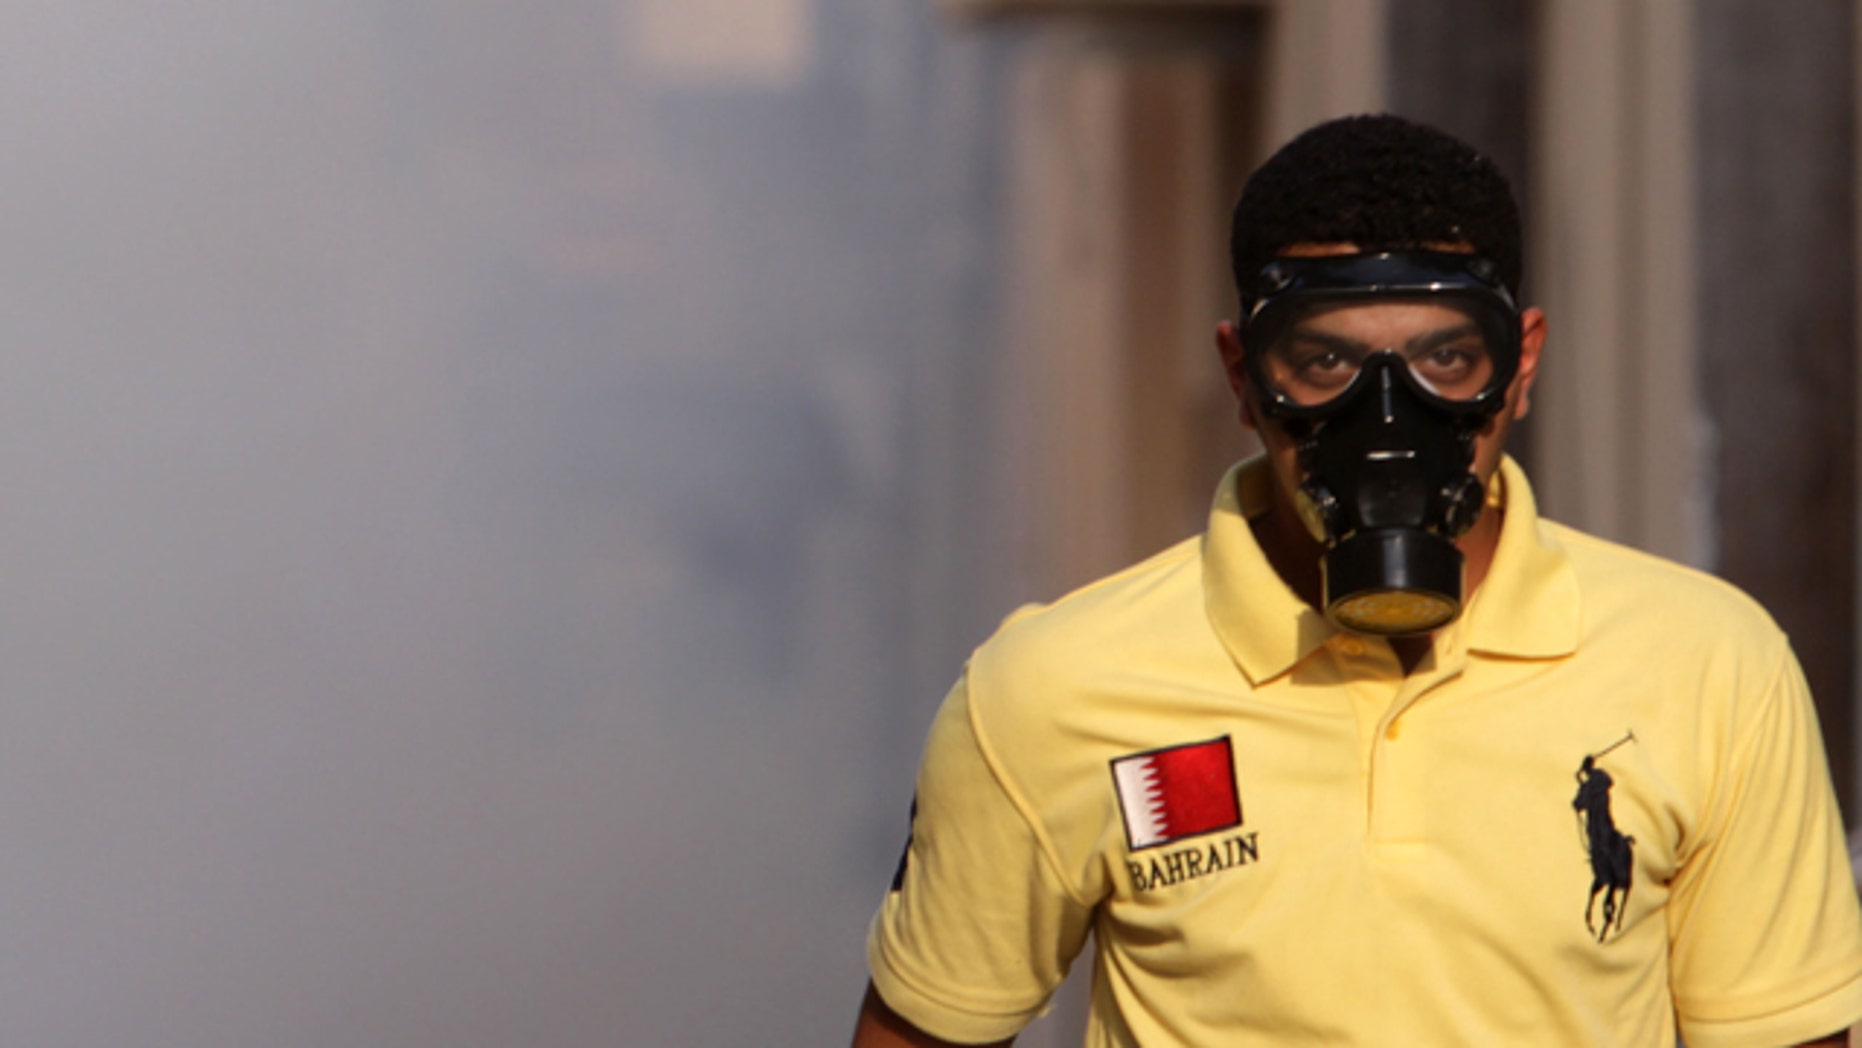 Sept. 24: A Bahraini man wearing a mask walks through tear gas during clashes between anti-government protesters and riot police n the Shiite village of Sanabis, Bahrain, on the edge of the capital of Manama.